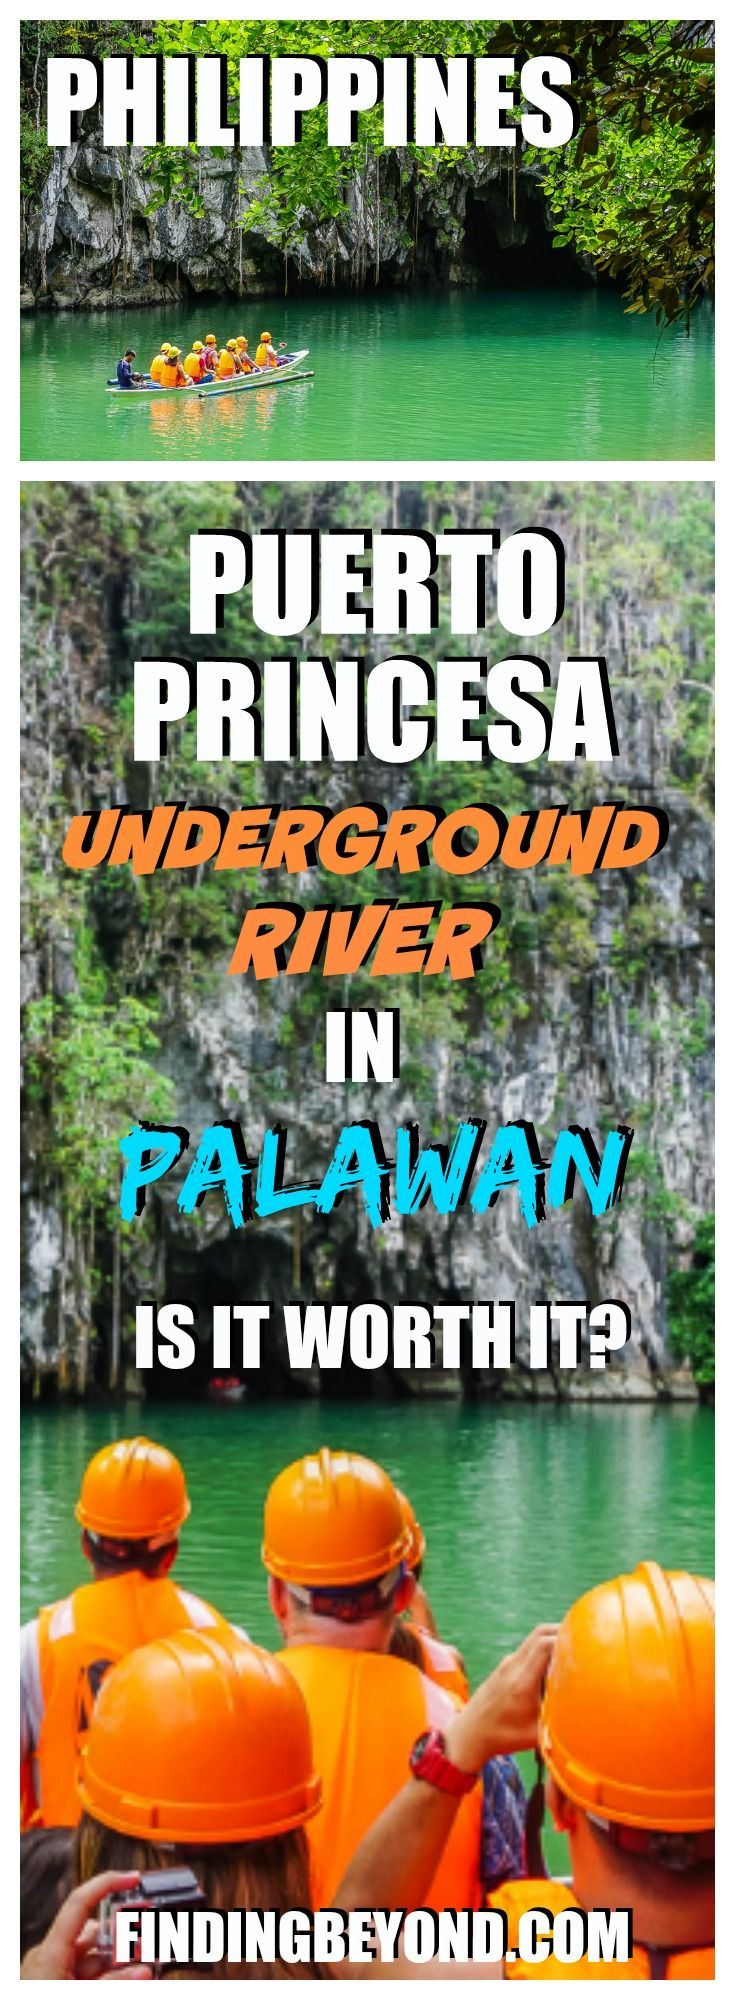 The Puerto Princesa Underground River In Palawan is one of the New7Wonders of Nature, but is it worth it? Check out our tour timeline and opinion.